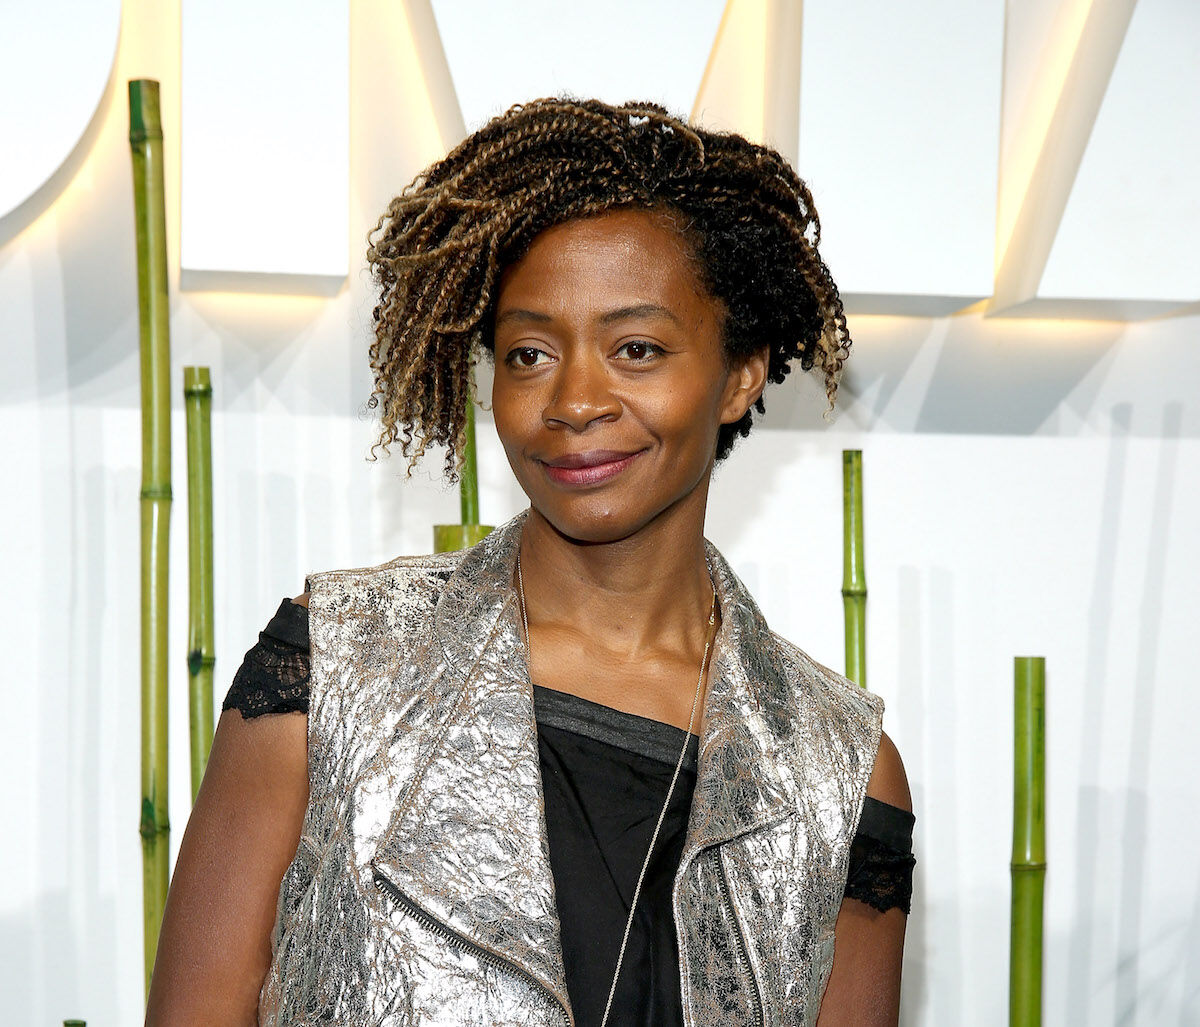 Kara Walker at the Museum of Modern Art Party In The Garden in 2015. Photo by Paul Zimmerman/WireImage.